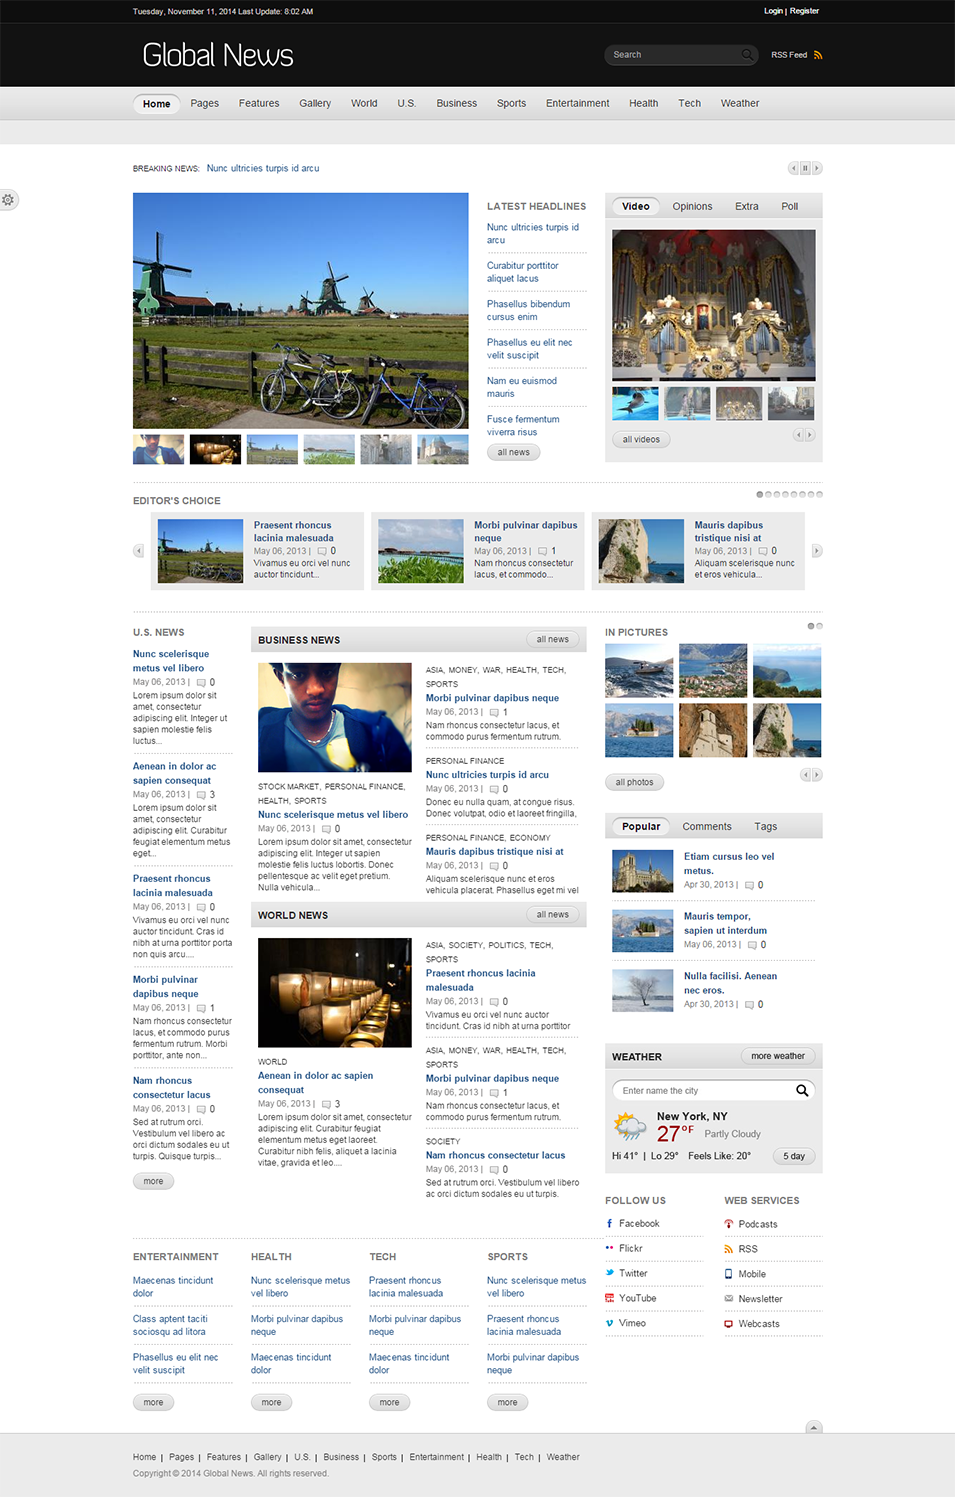 Drupal News Portal Website Templates & Themes | Free & Premium ...